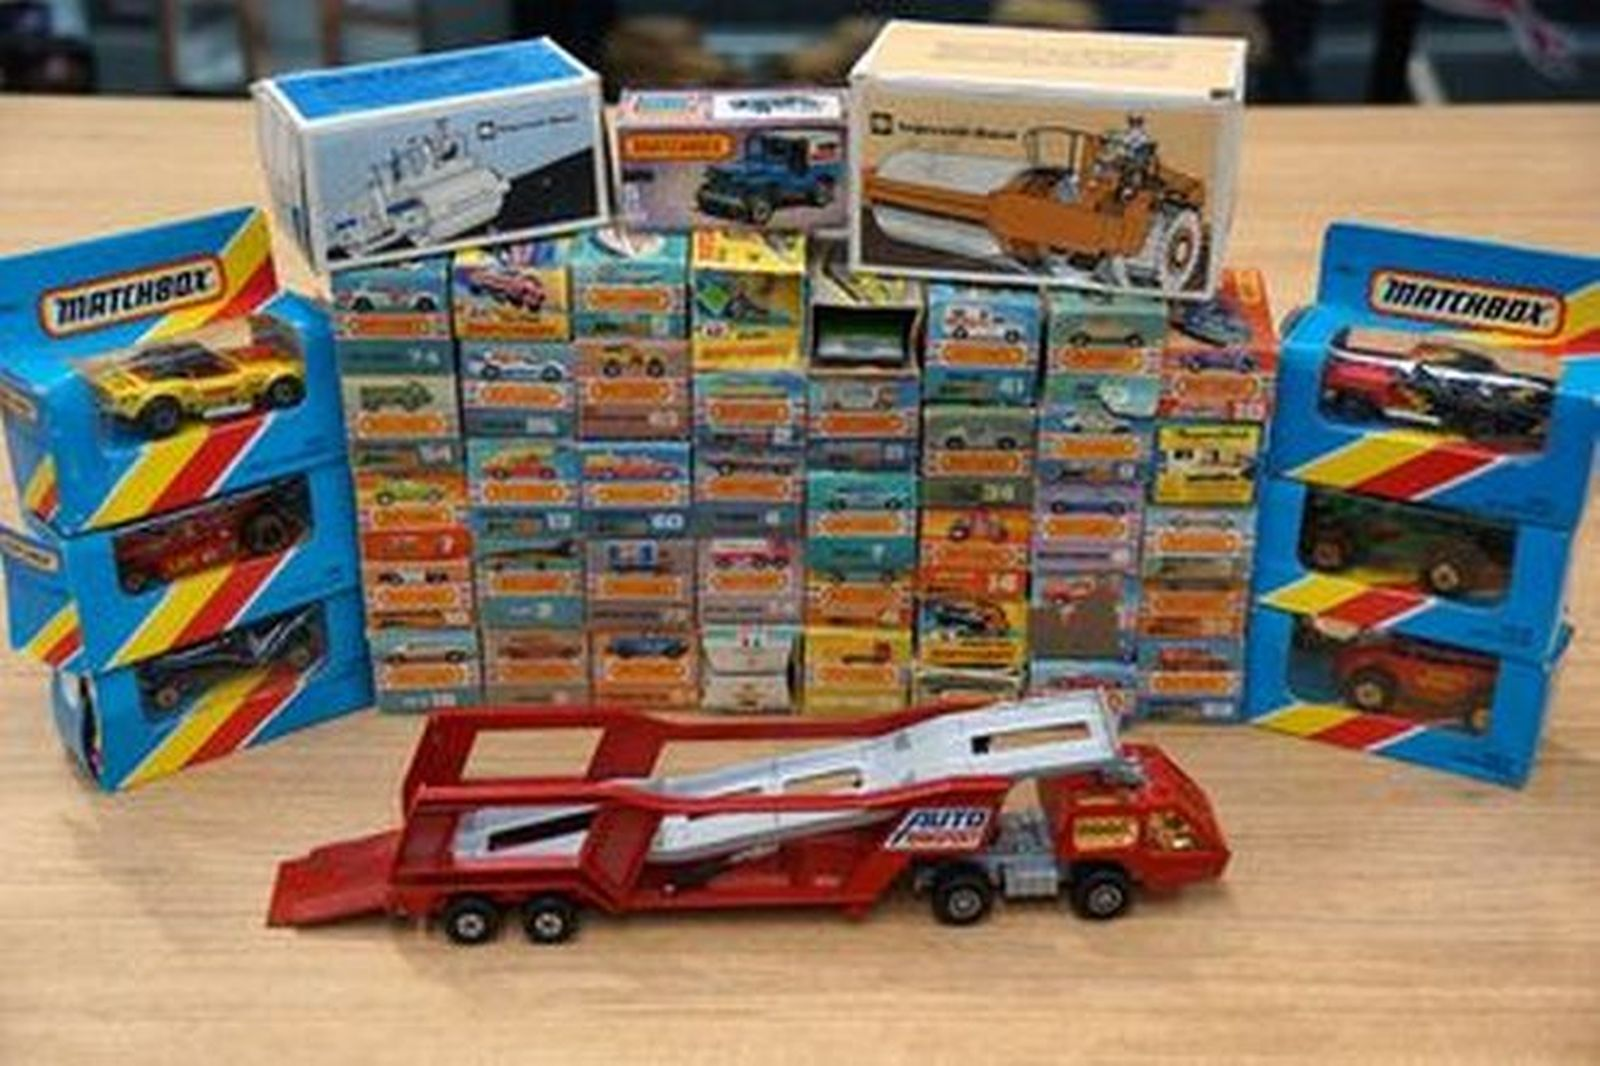 Model Cars - 50 x Matchbox Models - 47 x Cars, 2 x Machinery, 1 x Transporter Truck